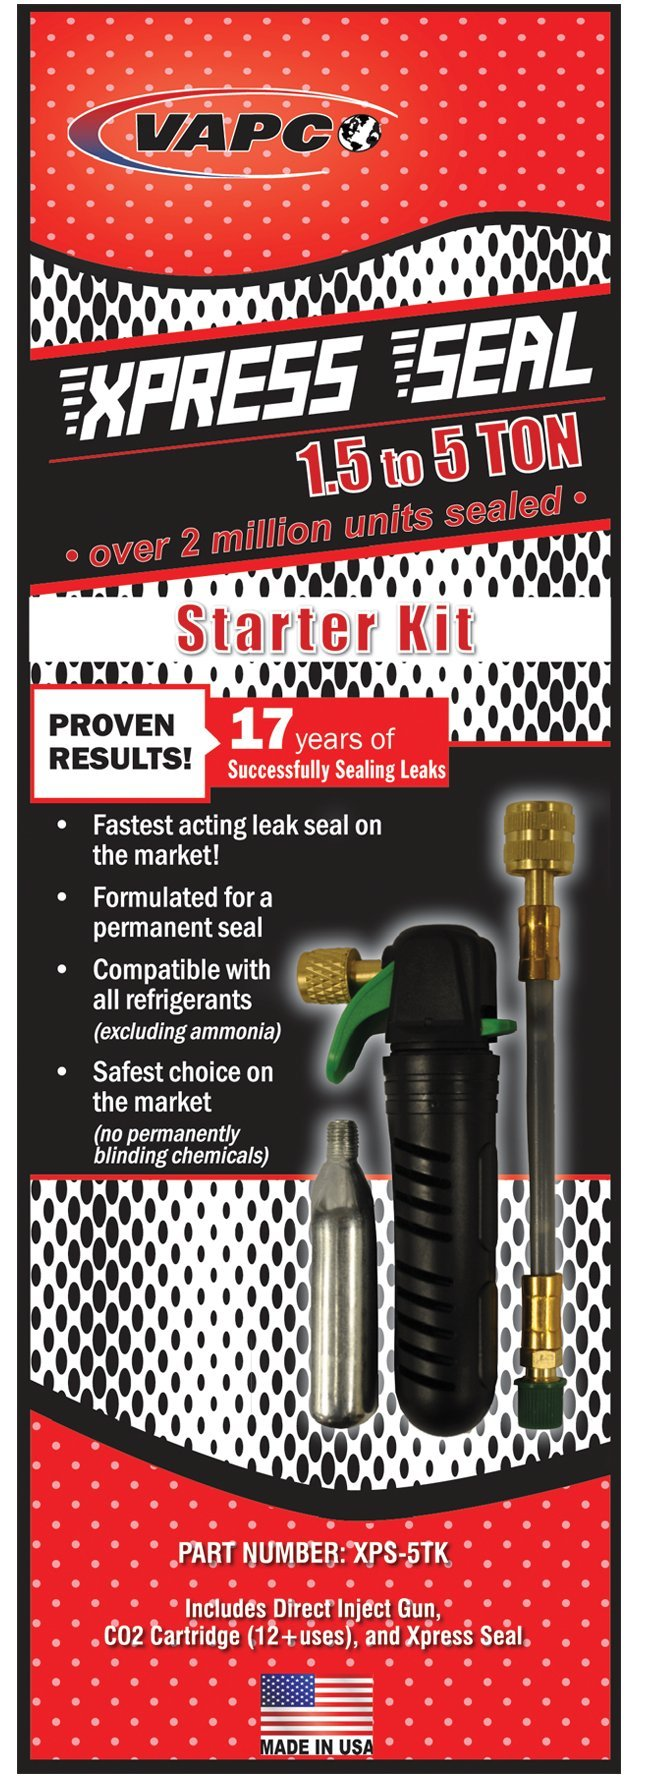 Vapco Xpress Seal Starter Kit - Professional A/C & Refrigeration sealant for systems 1.5 to 5 tons. MADE IN USA & over 2 million systems sealed. by Vapco